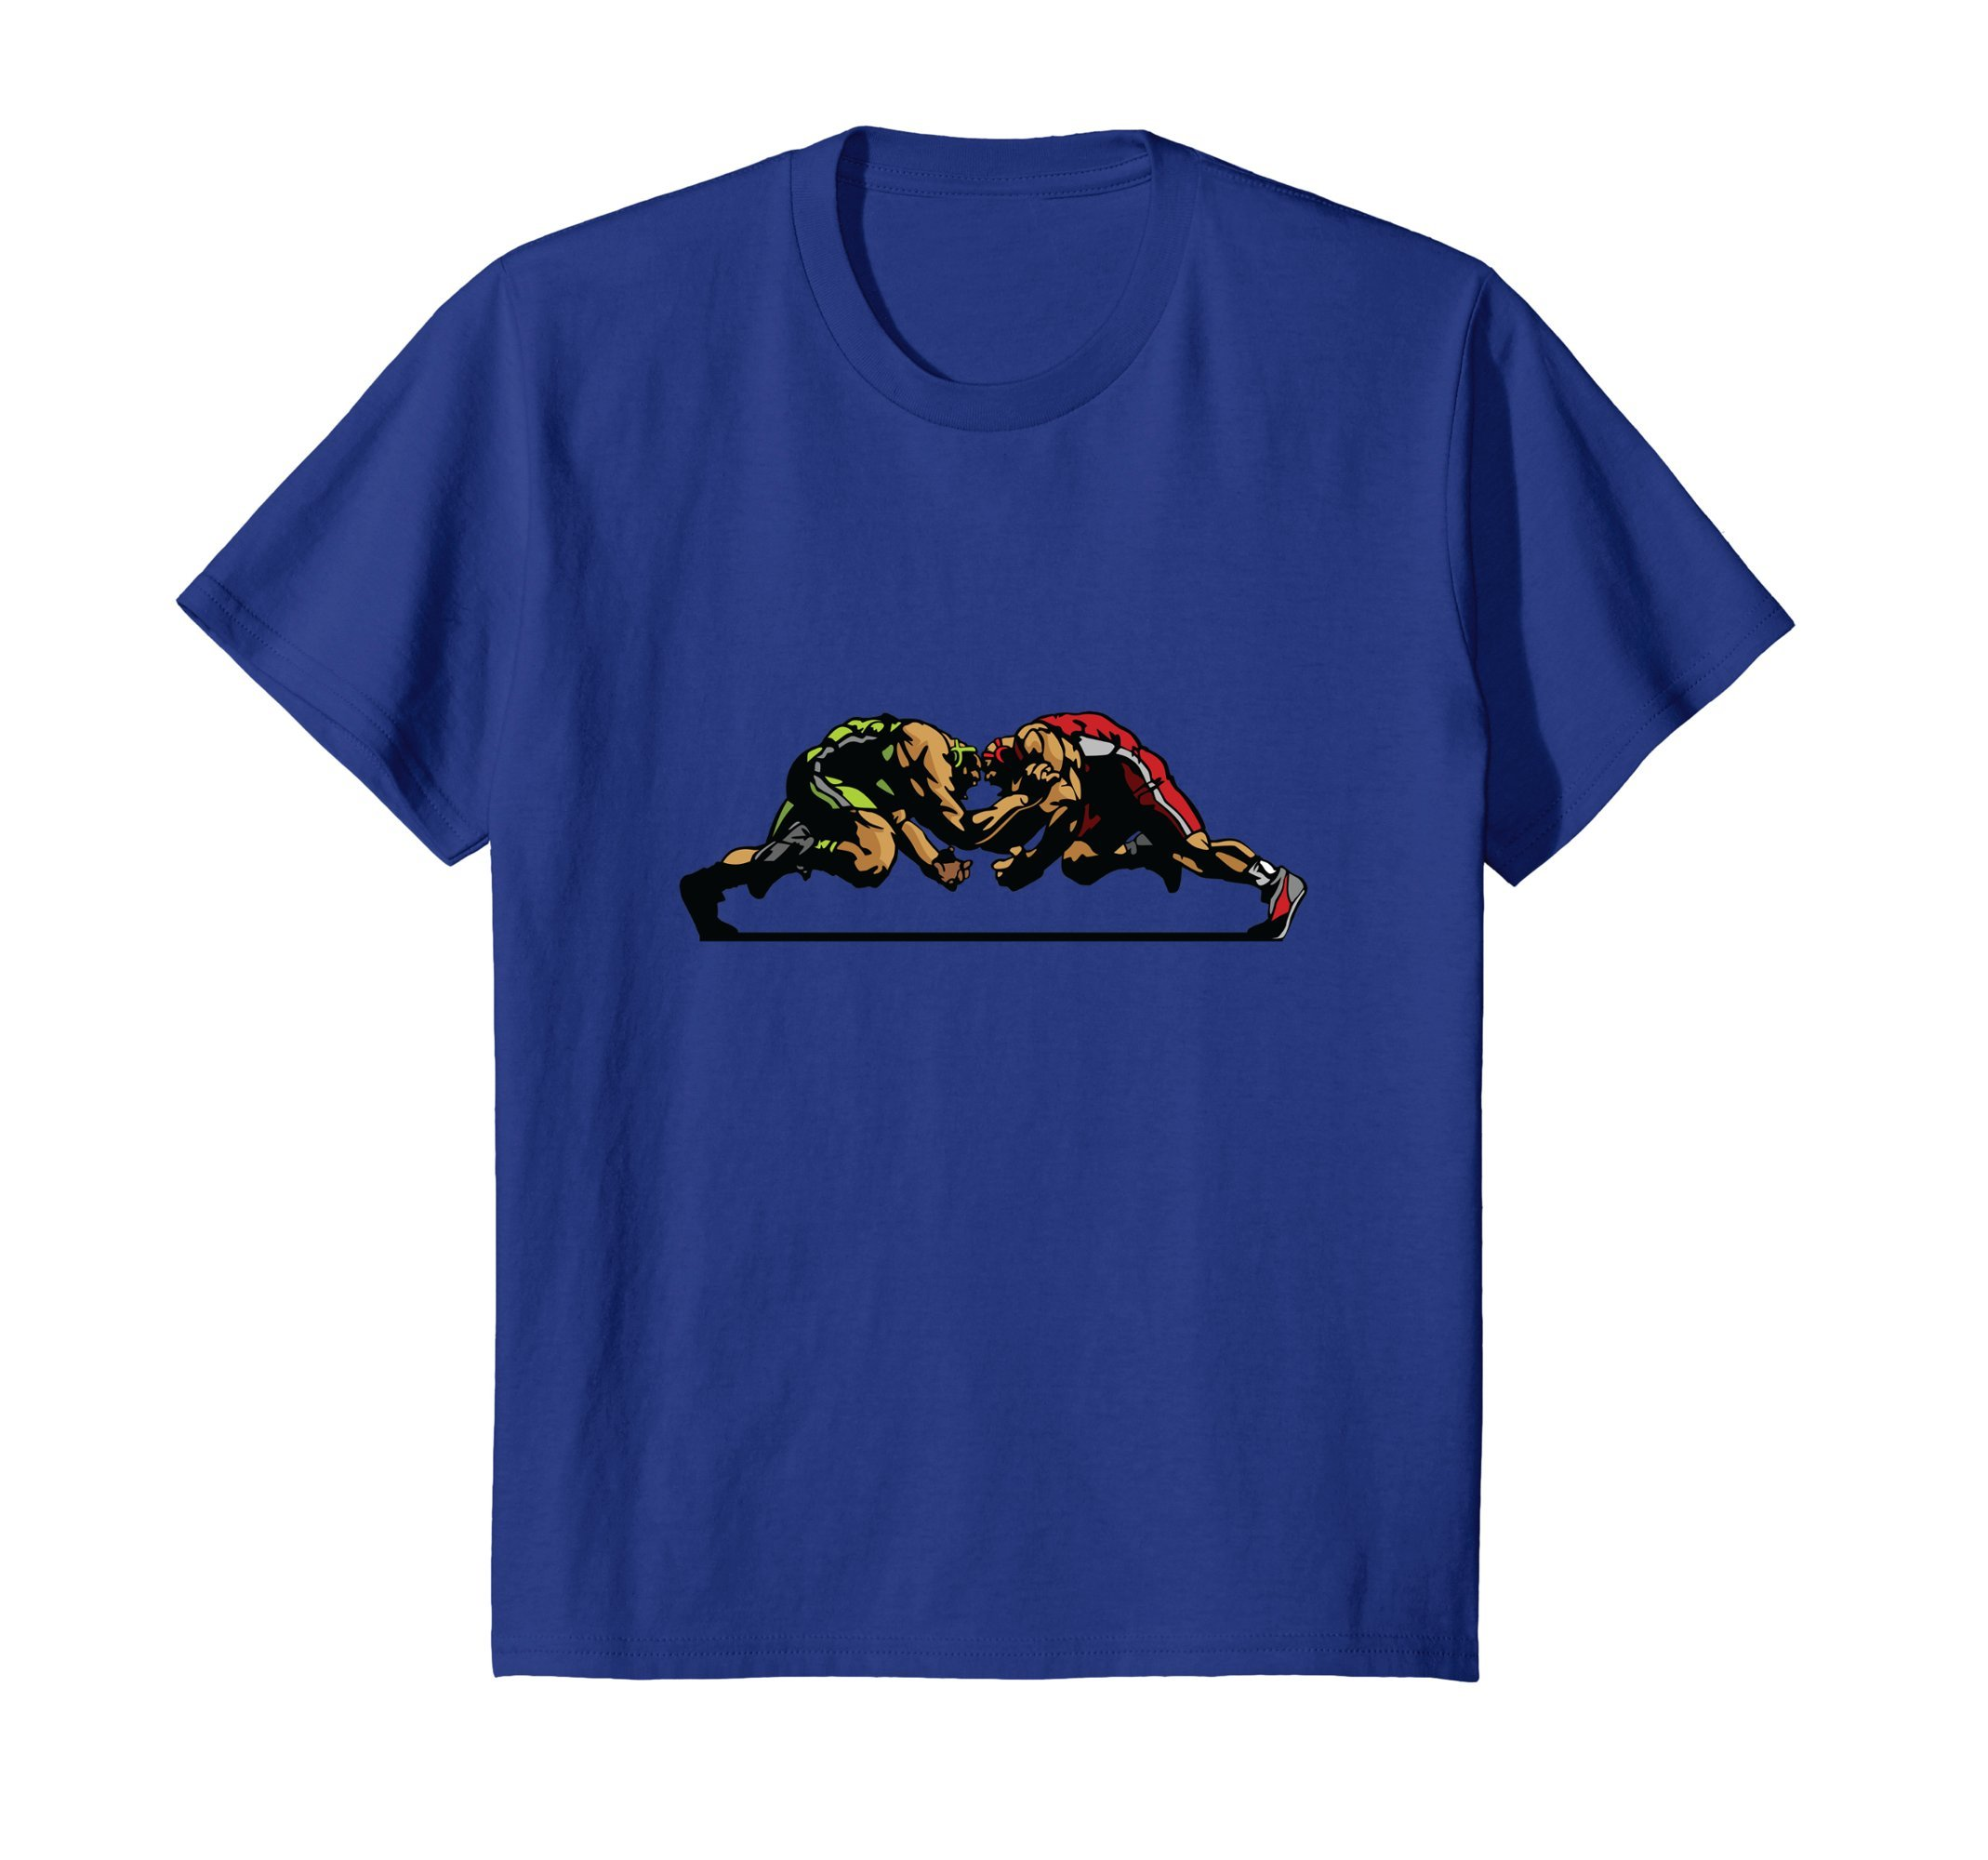 Kids Wrestling shirt 8 Royal Blue by McPhoto